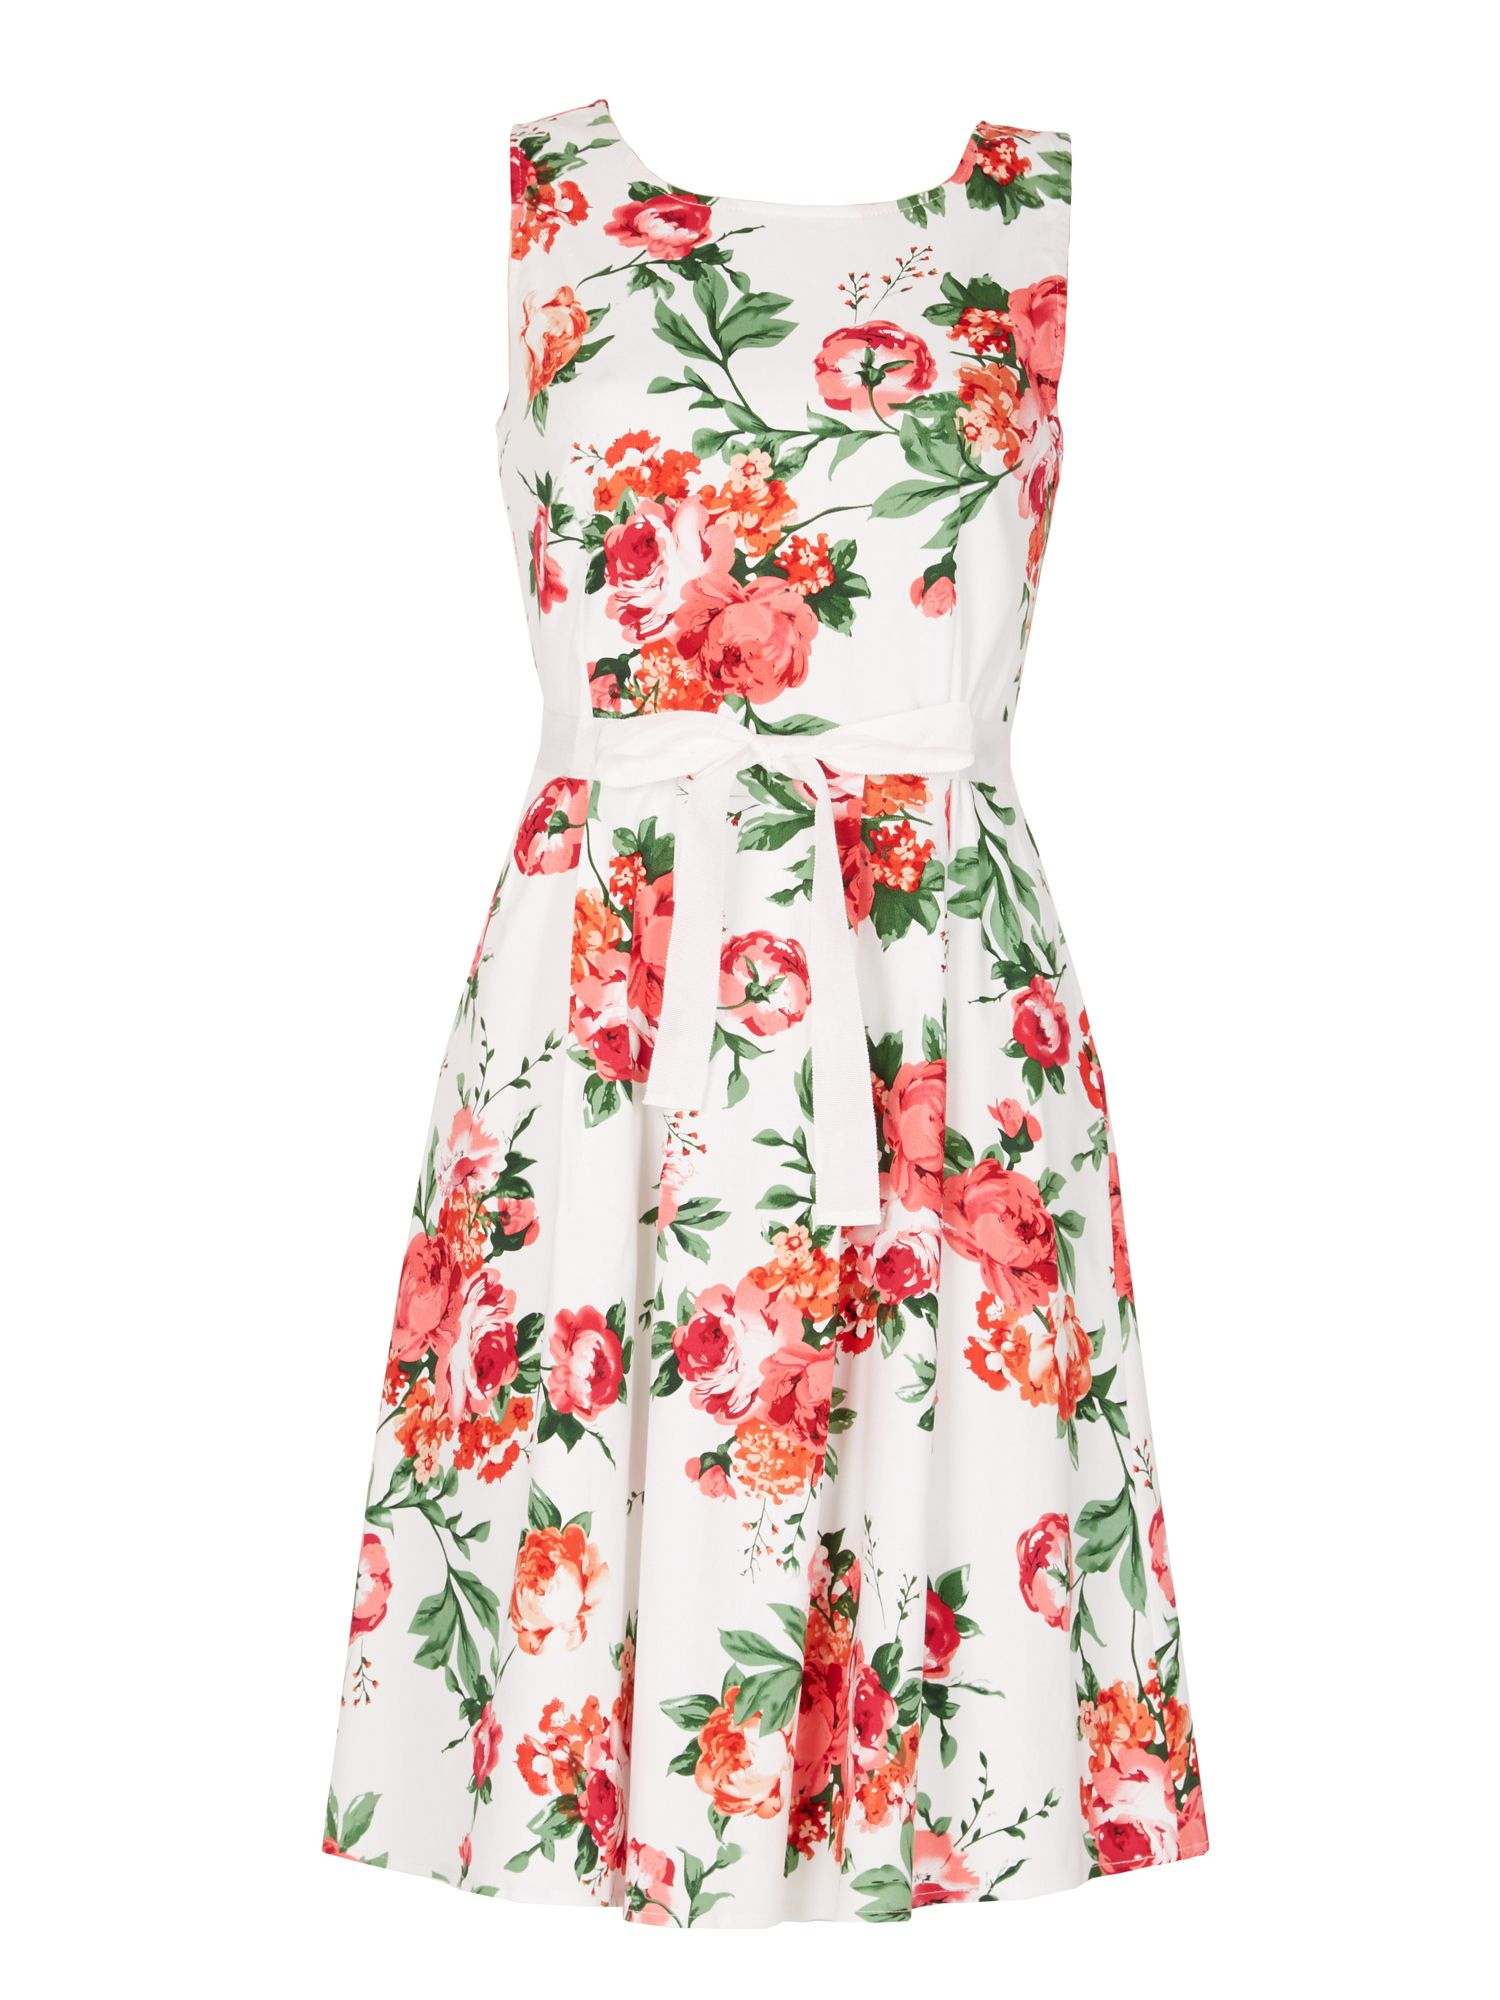 Izabel London Floral Print Skater Dress, Pink